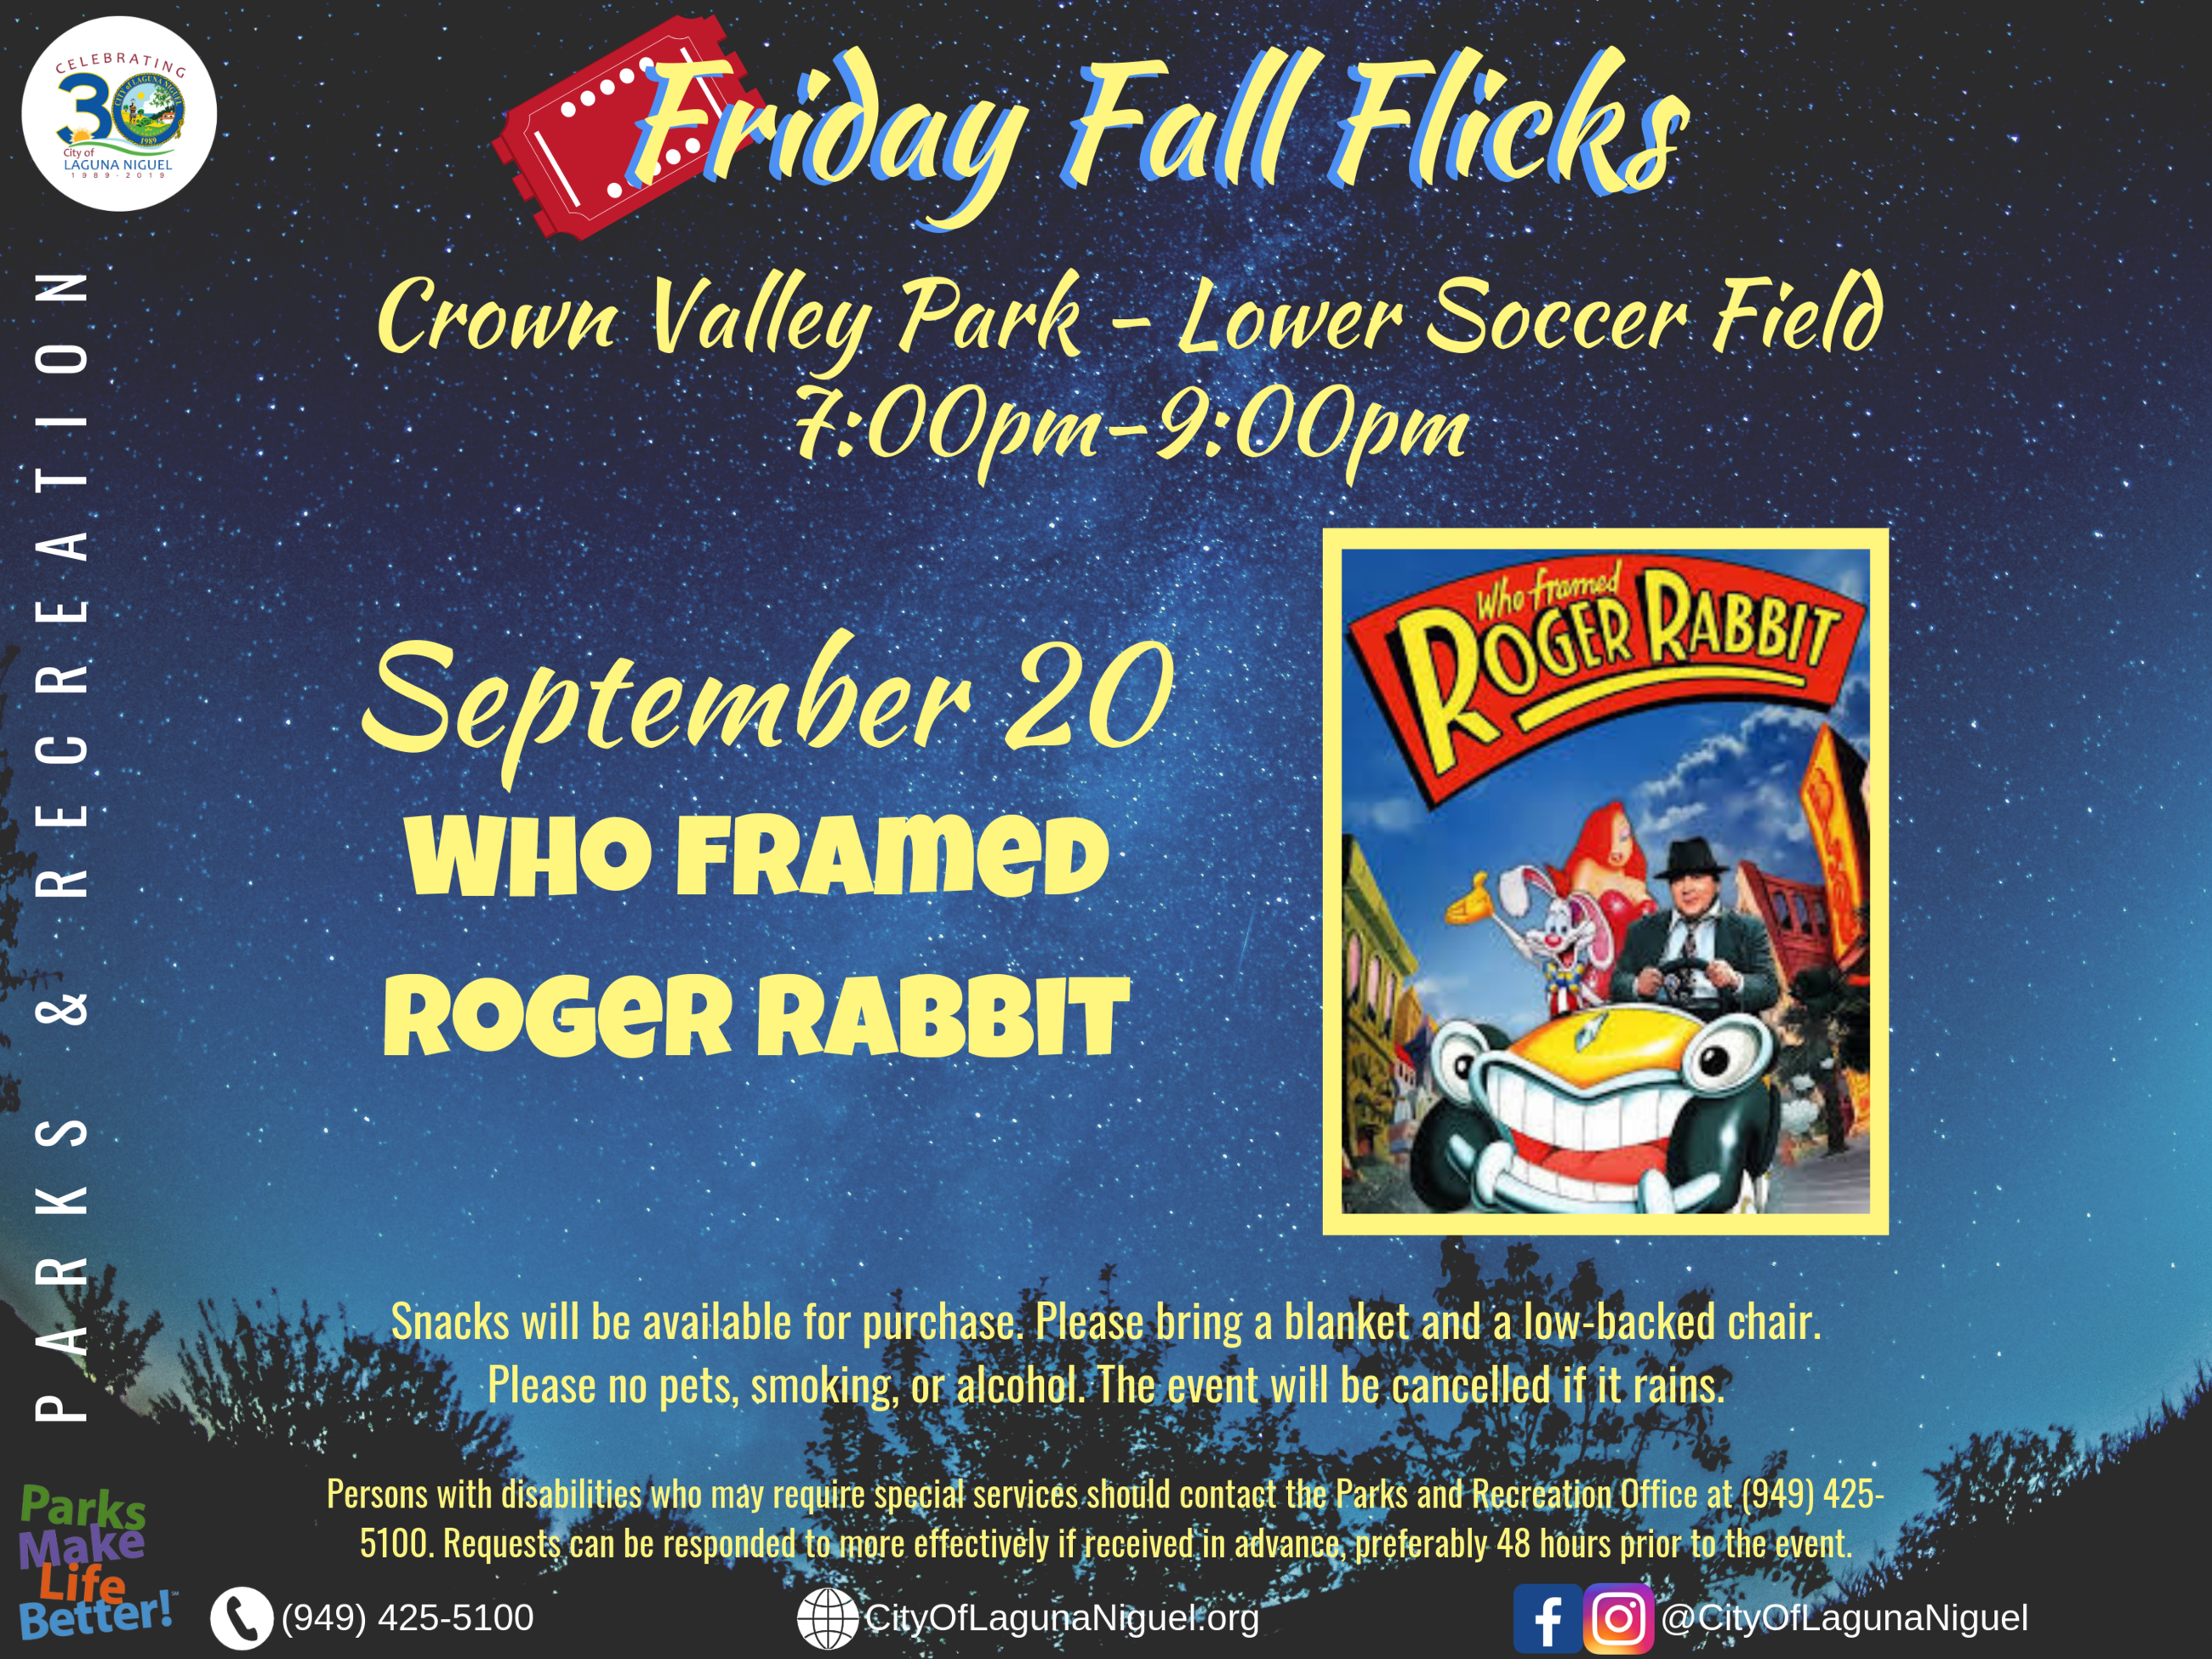 Fall Flicks Roger Rabbit 2019